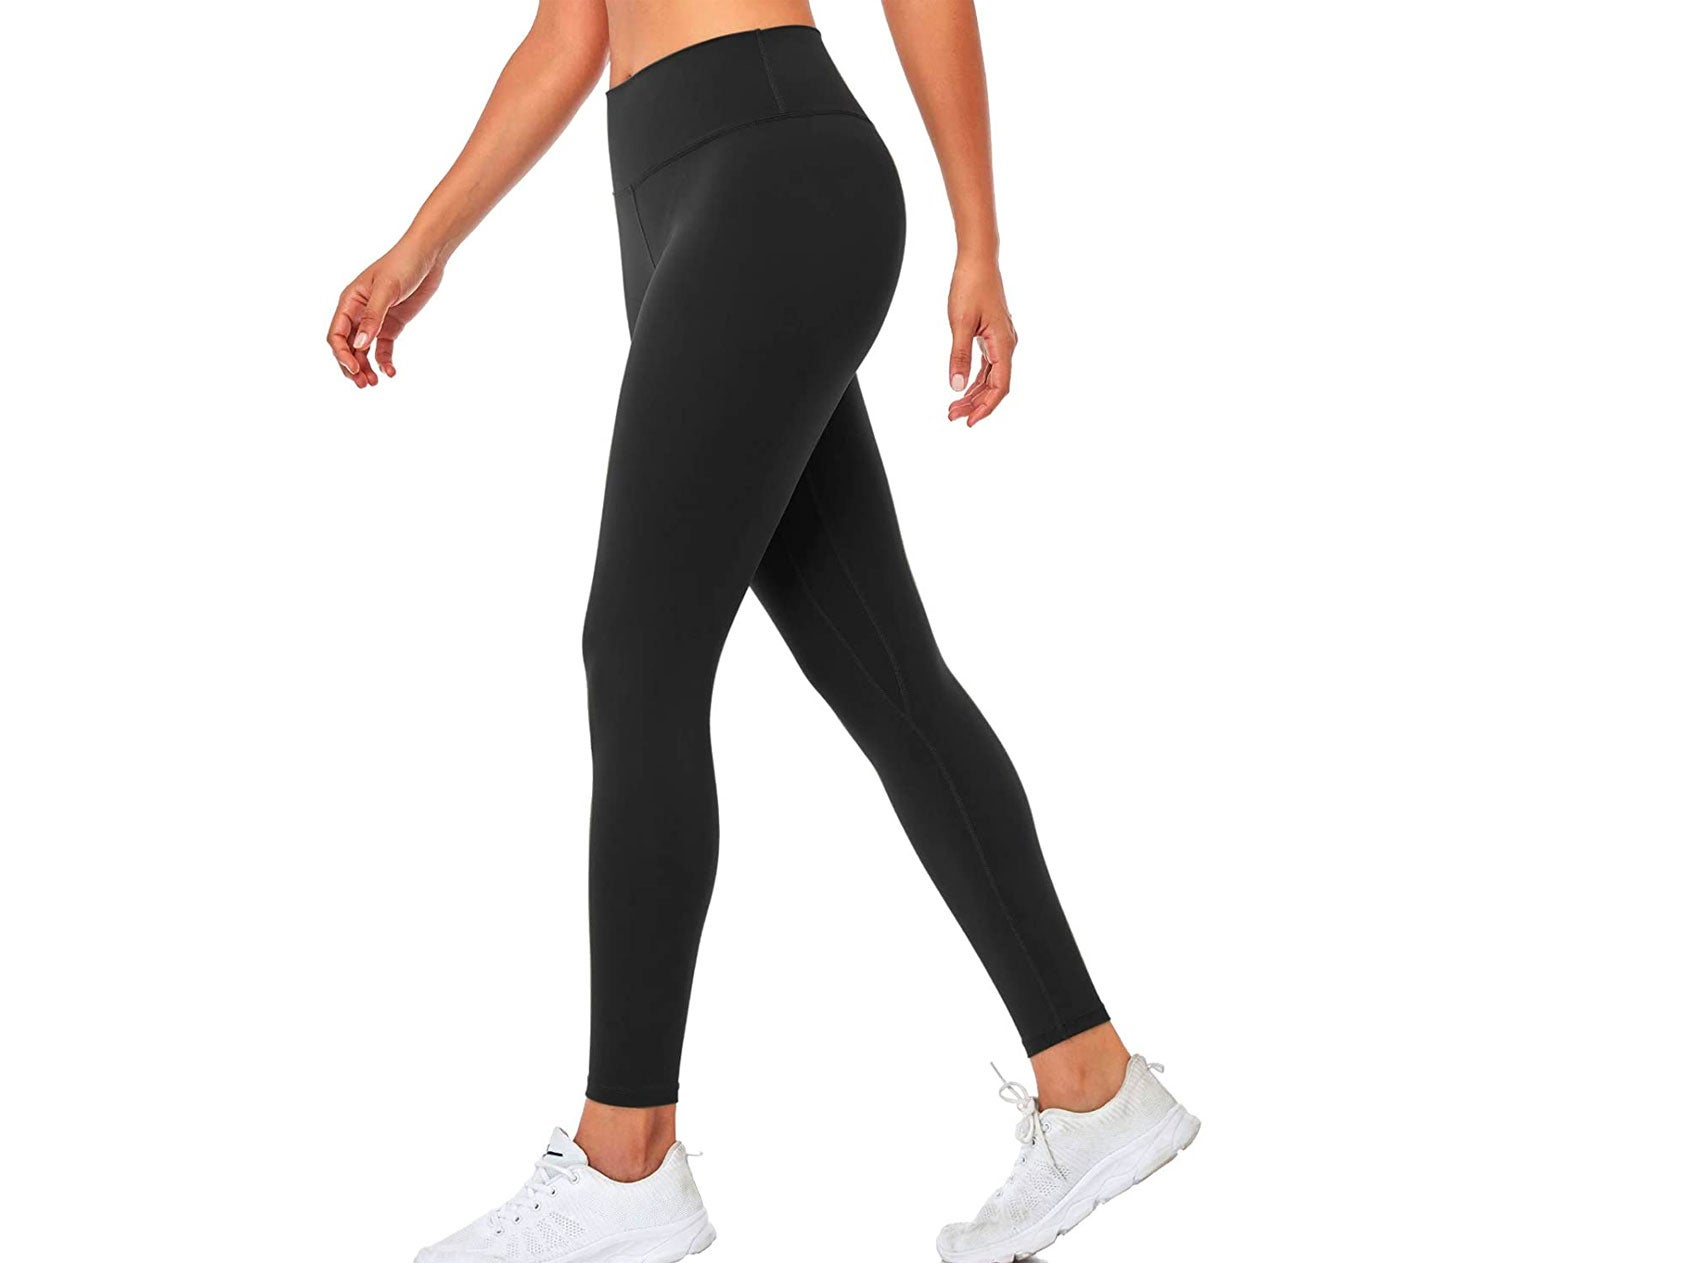 SIHOHAN Yoga Pants for Women, High Waist Tummy Control Stretch Gym Workout Running Leggings, Fitness Sports Tights with Inner Pocket